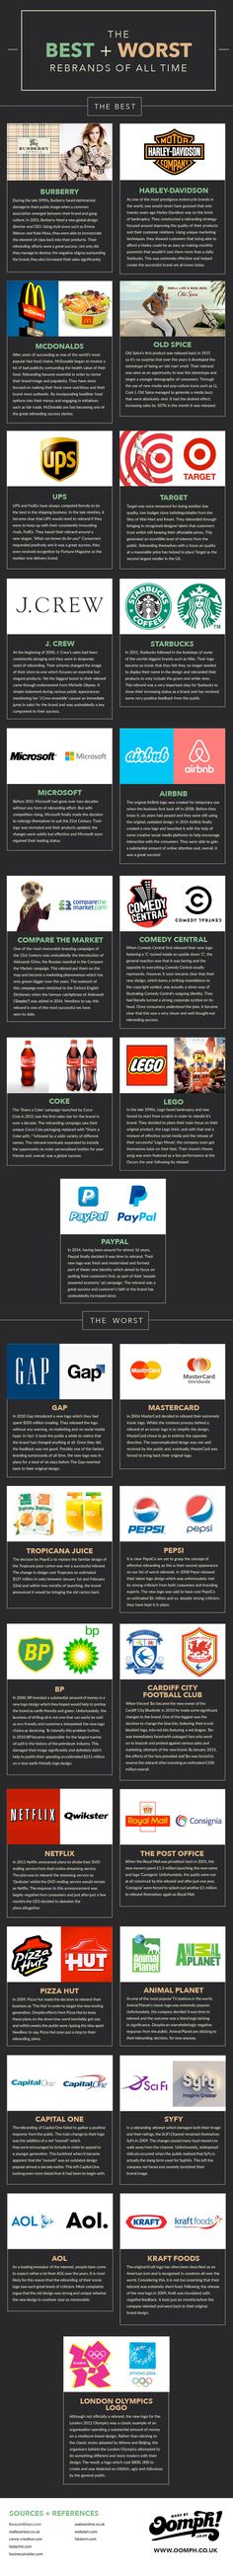 Best and Worst Rebrands of All Time #infographic #Branding #Business